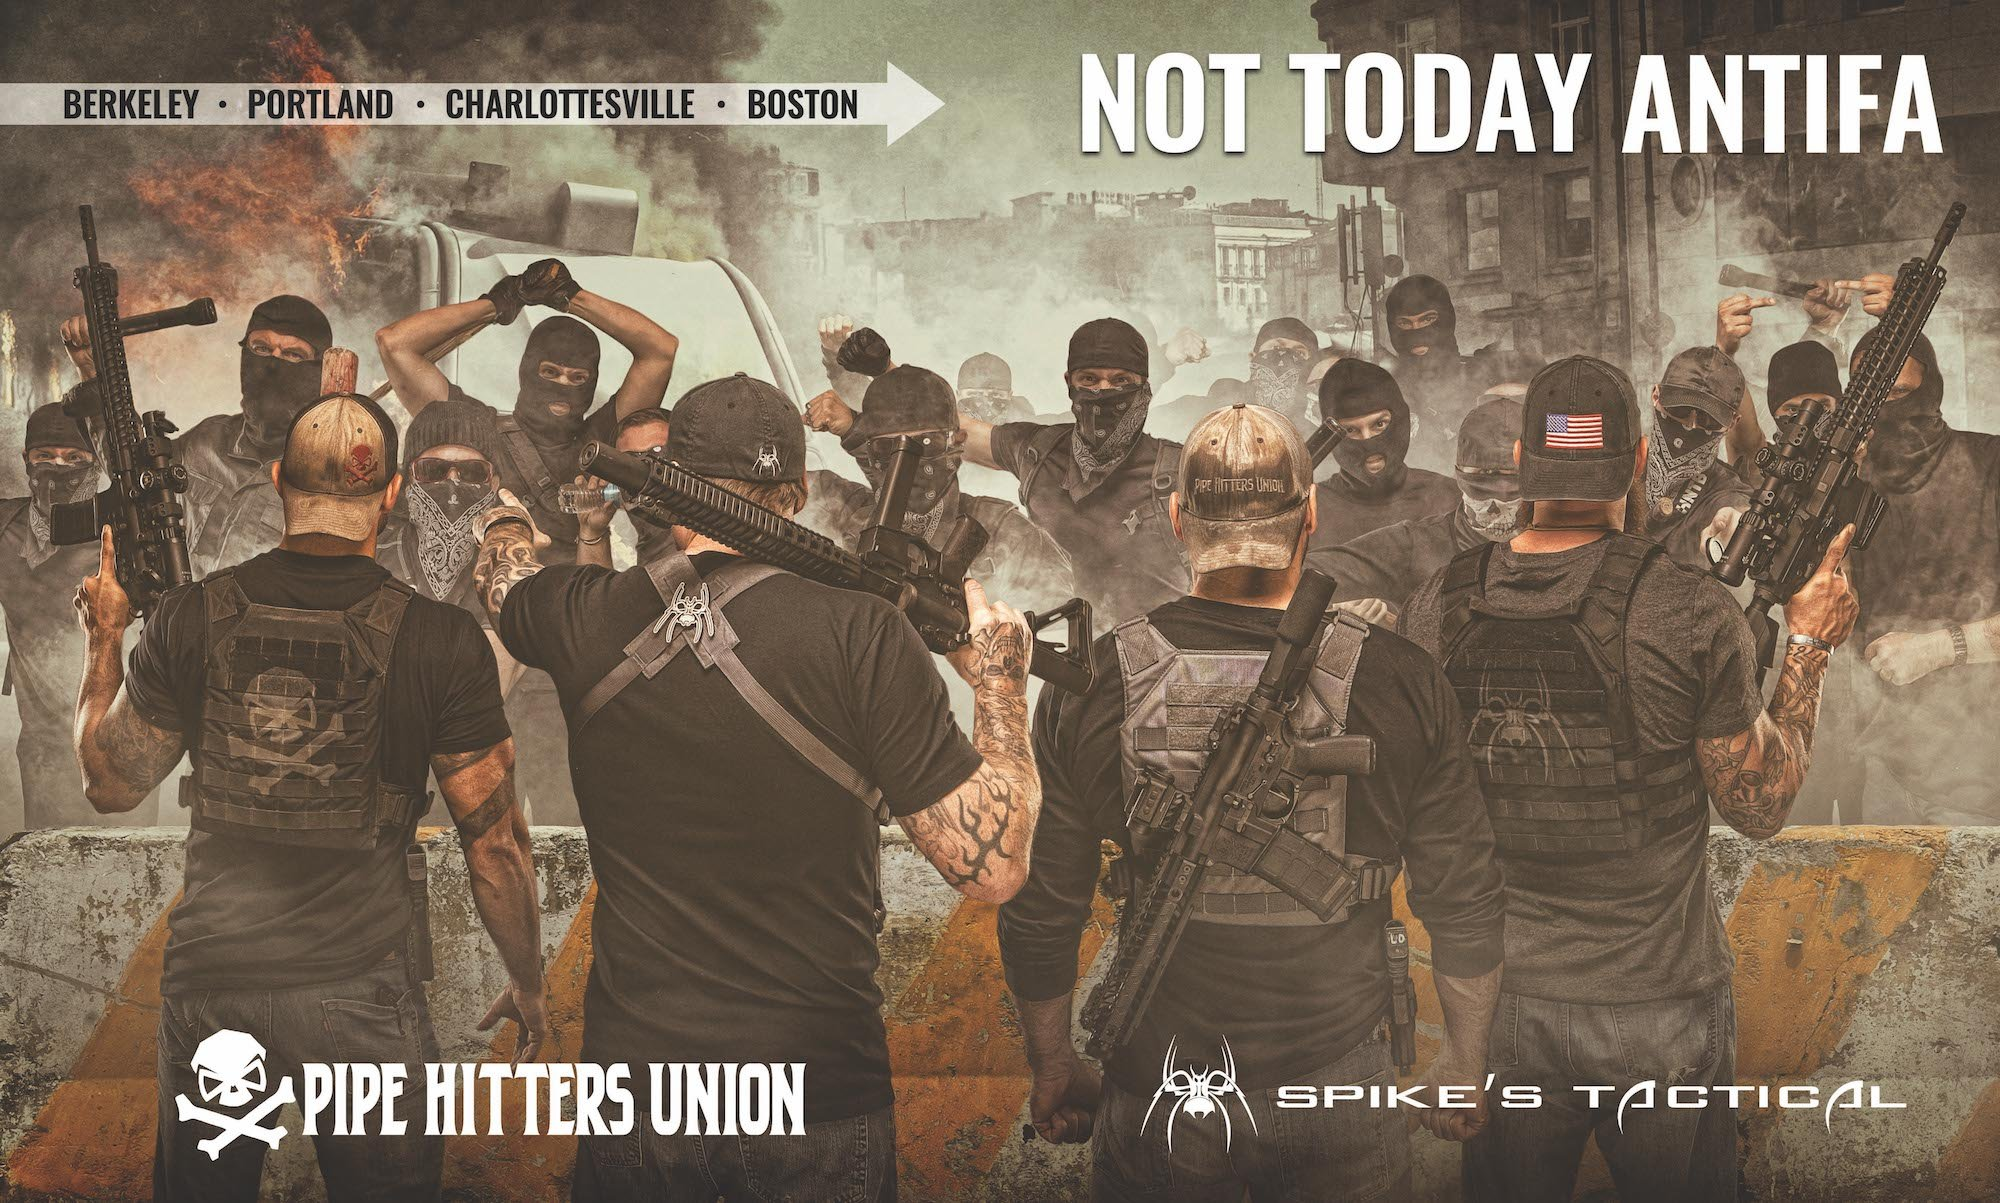 Florida gun manufacturer, Texas-based apparel company attacked for pro-American, anti-Antifa advertisement